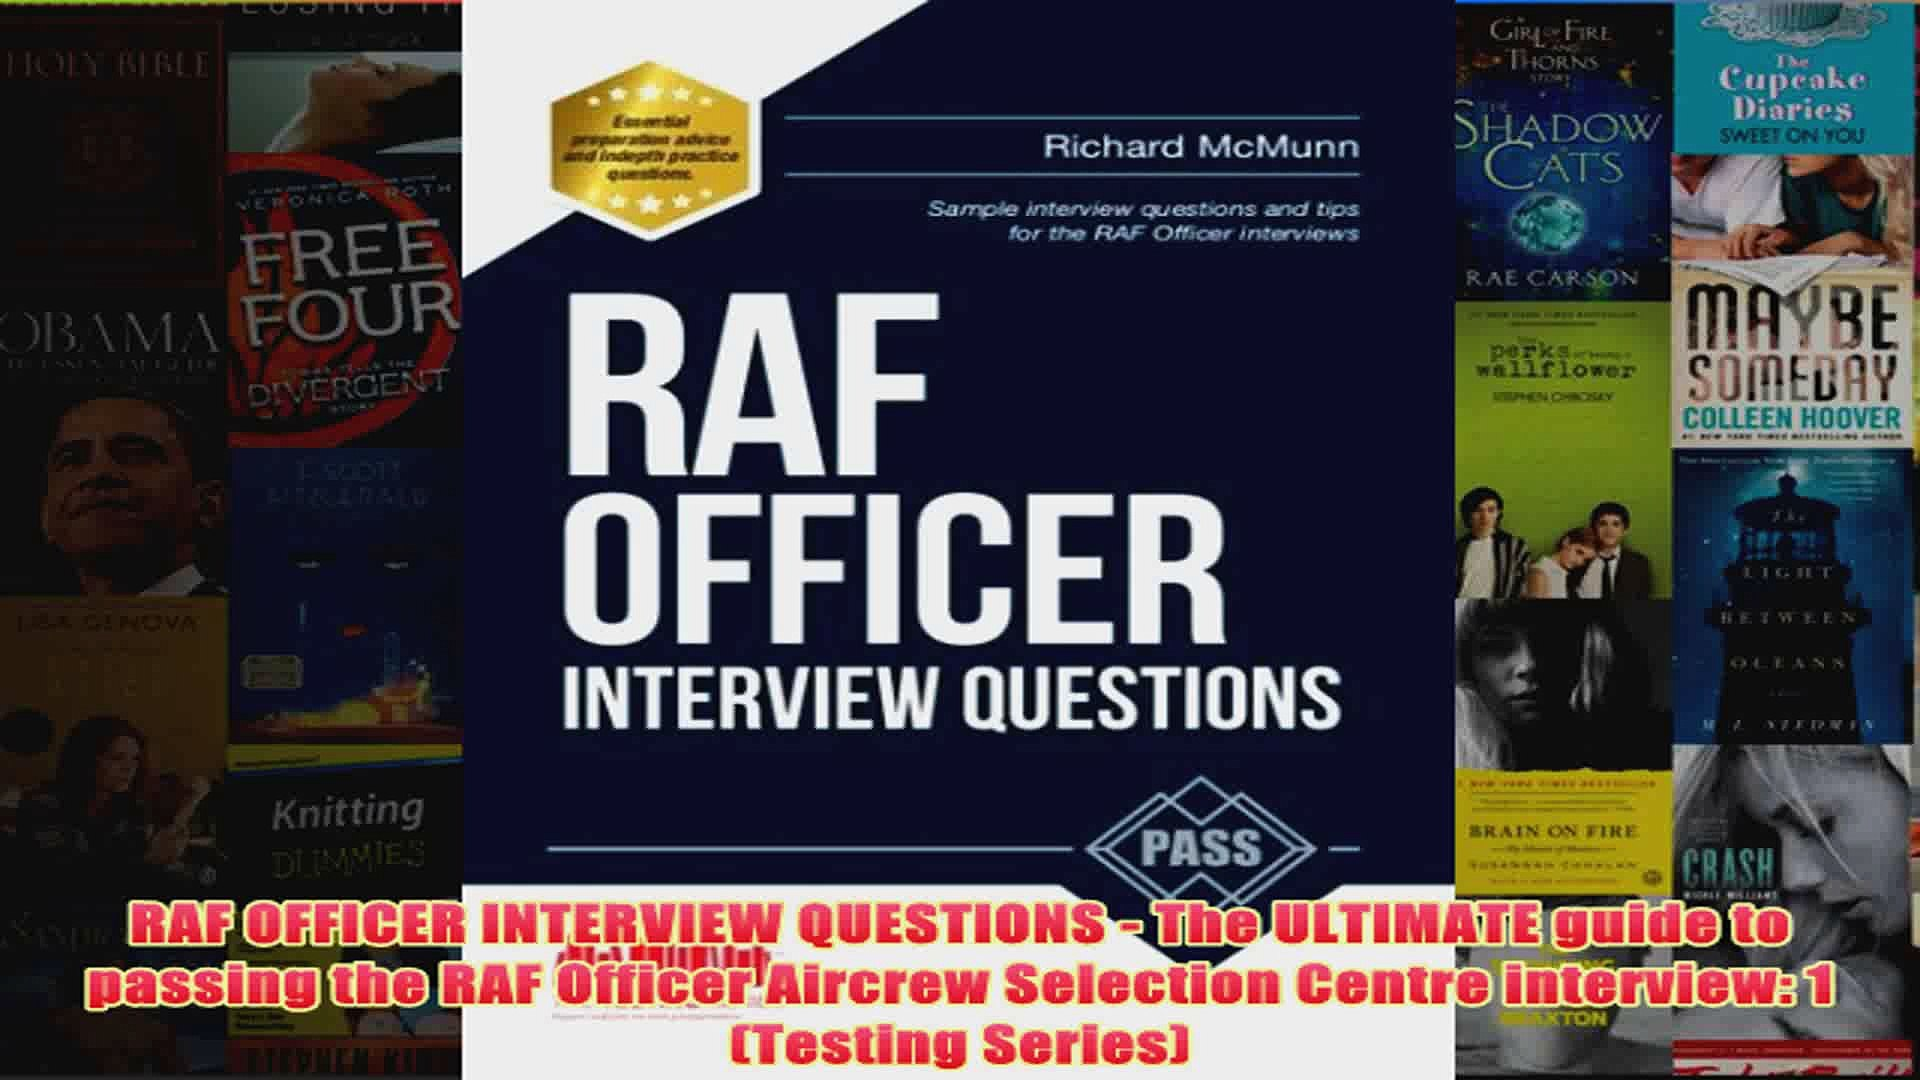 Download PDF  RAF OFFICER INTERVIEW QUESTIONS  The ULTIMATE guide to passing the RAF Officer Aircrew